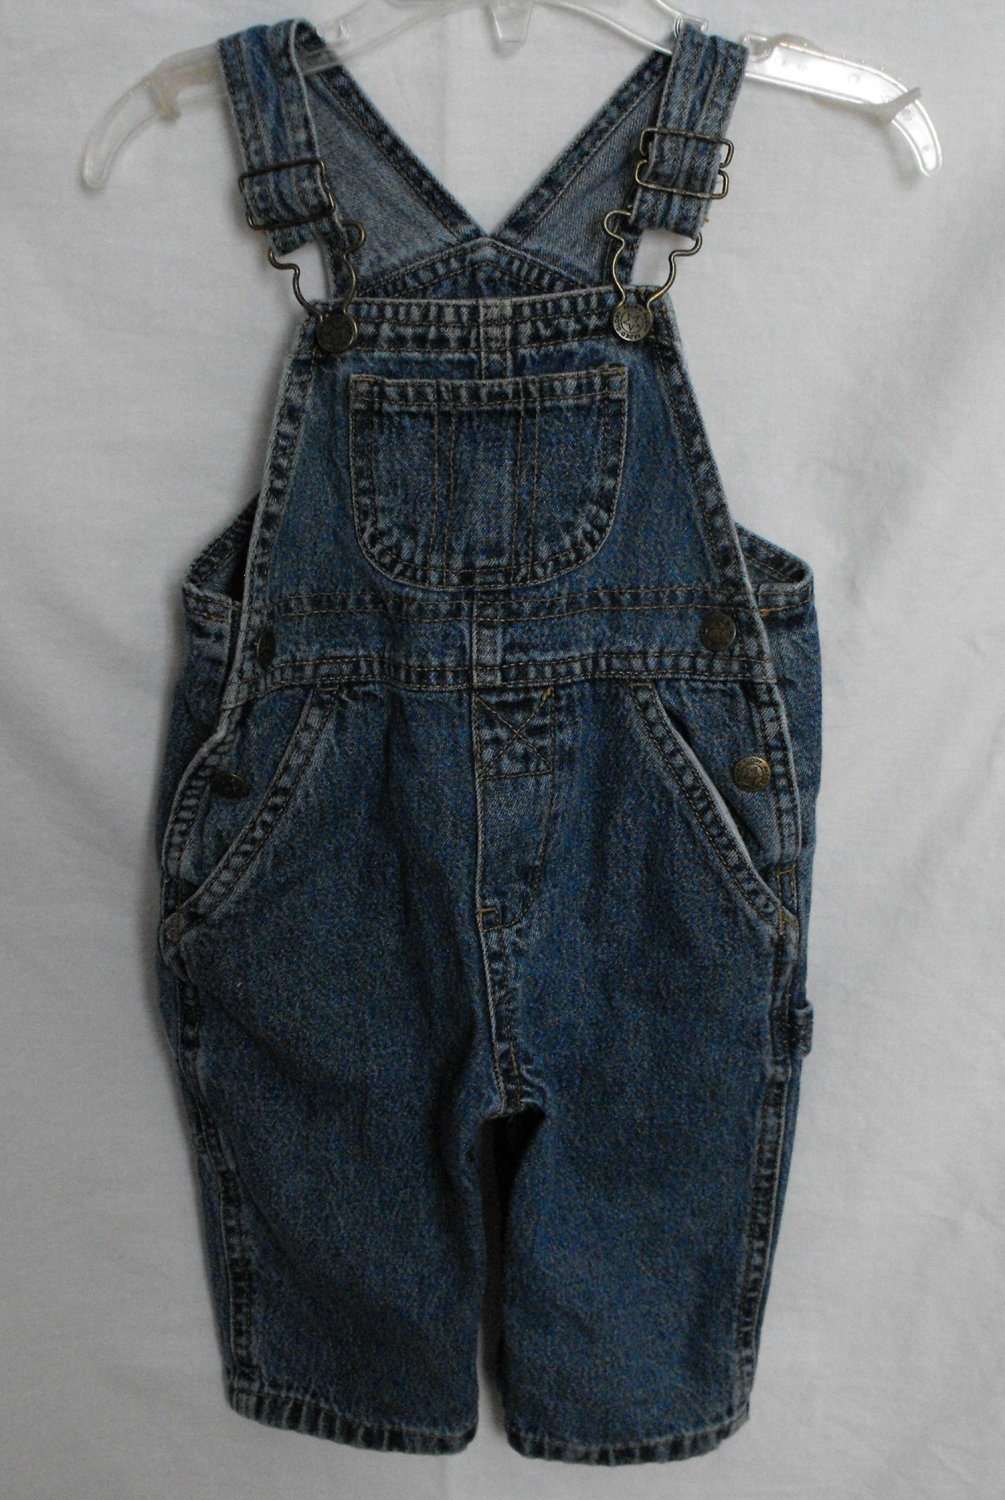 *1/15*SOLD~ Faded Glory Baby Boys 6-9 Months Jeans Overalls